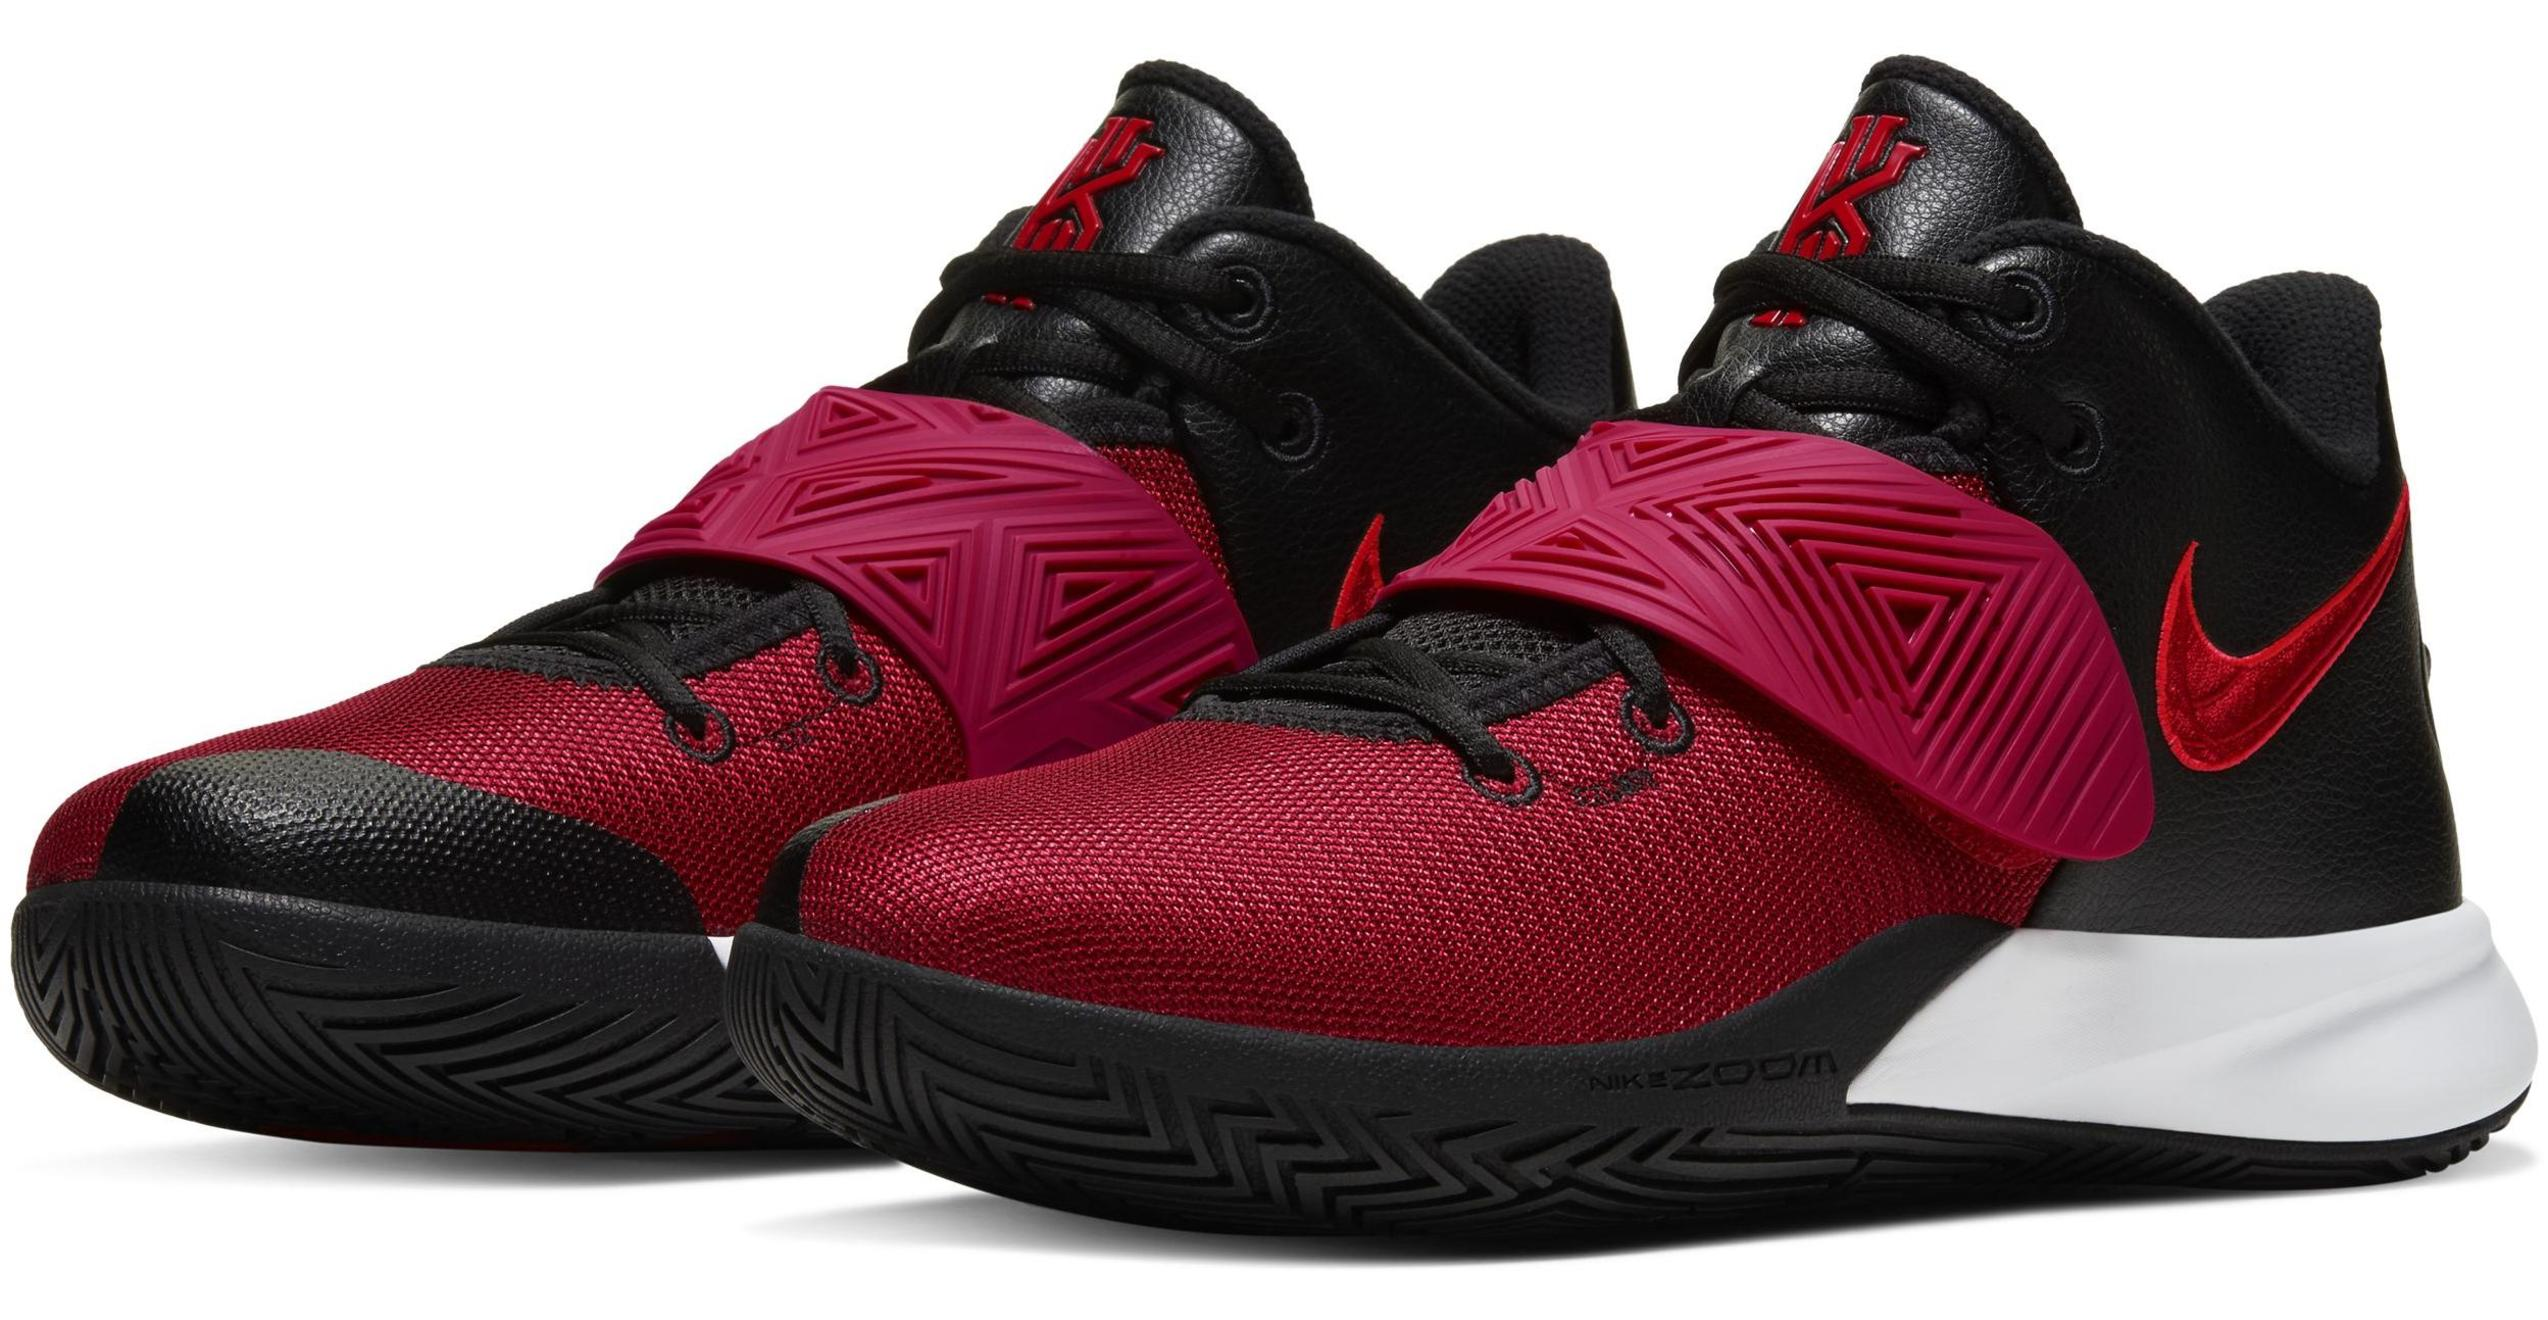 Kyrie Flytrap 3 Black/Bright Crimson/White/University Red